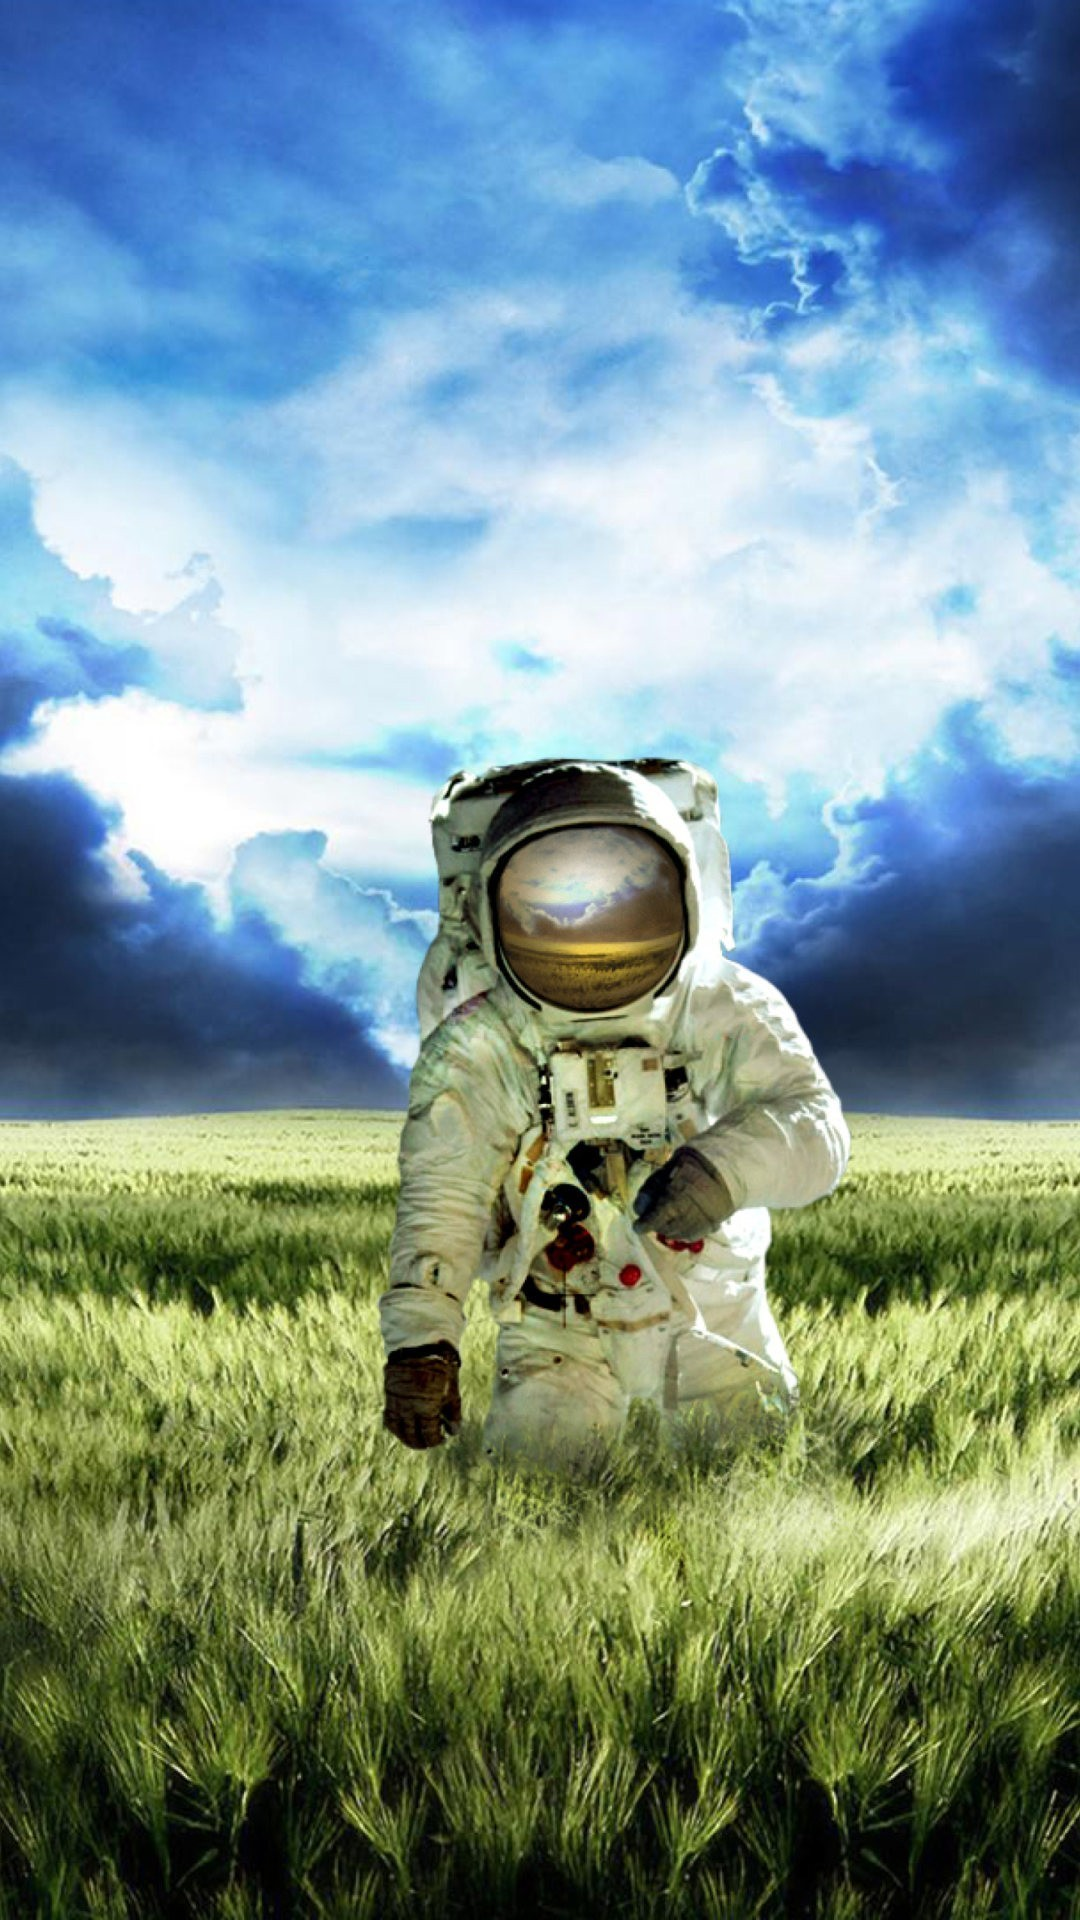 Astronaut in a new planet